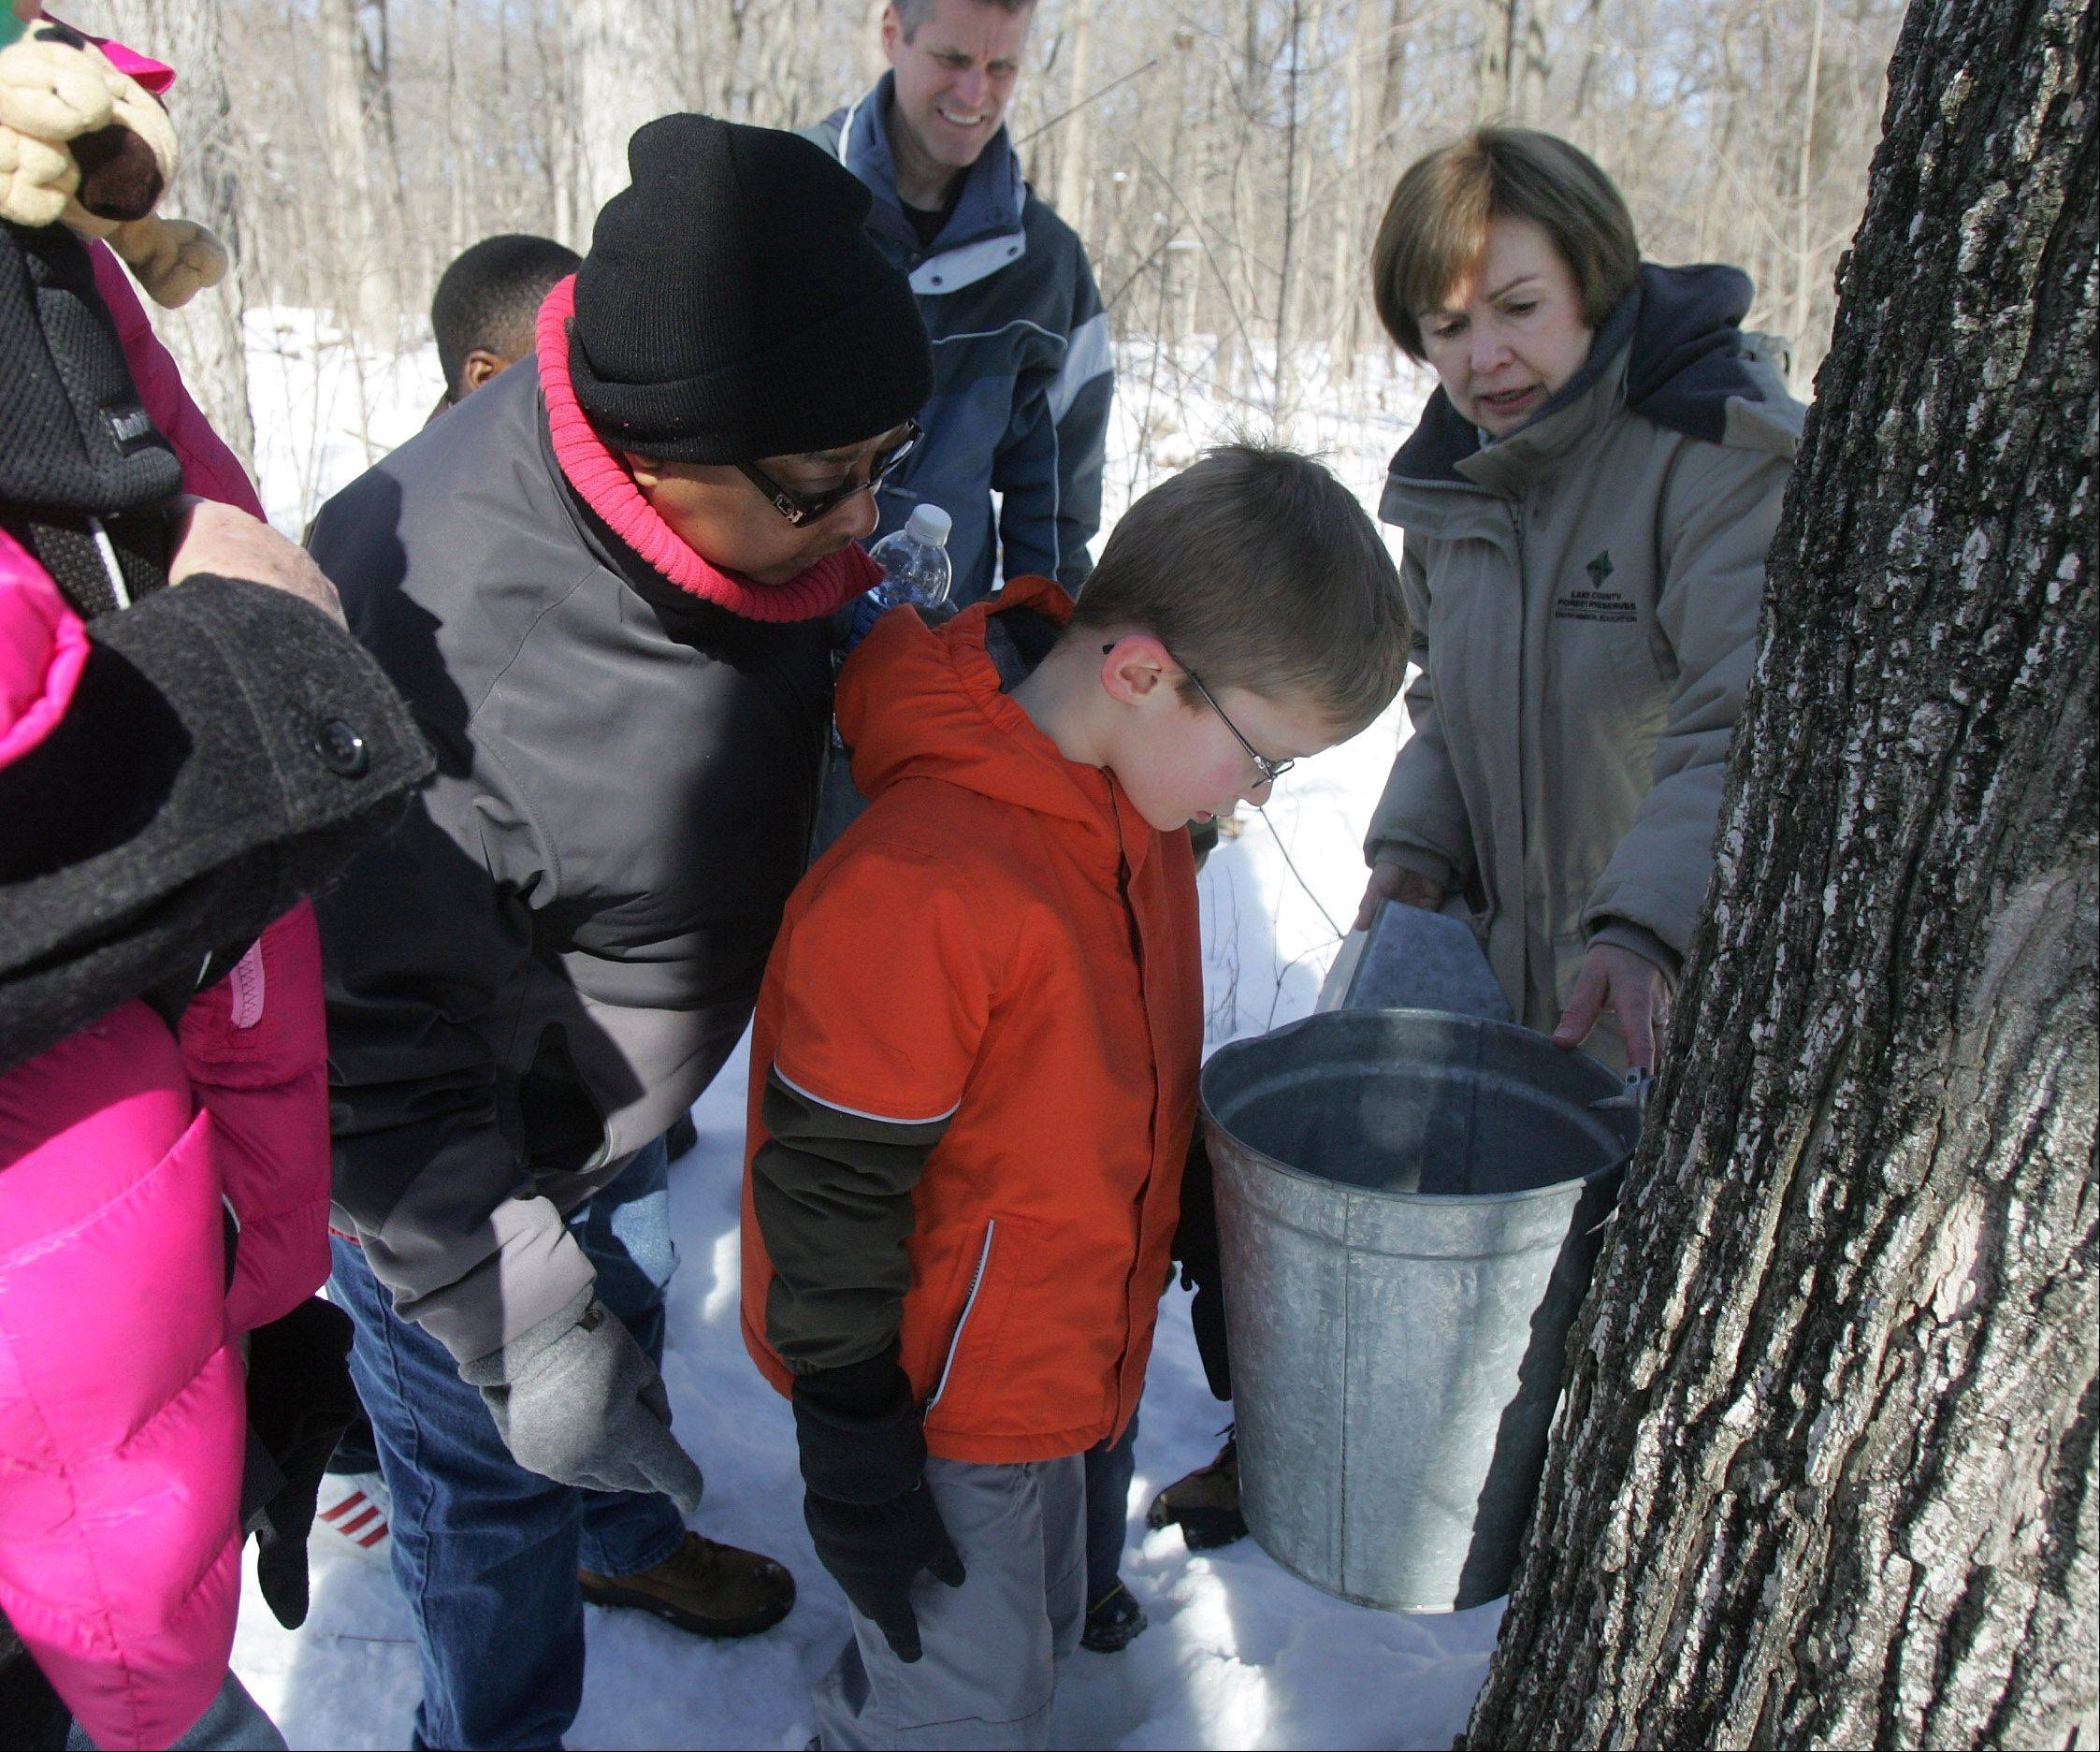 Nature guide June Melber, right, shows a pail collecting syrup from a maple tree Sunday during the Maple Syrup Hike at Ryerson Woods in Riverwoods.